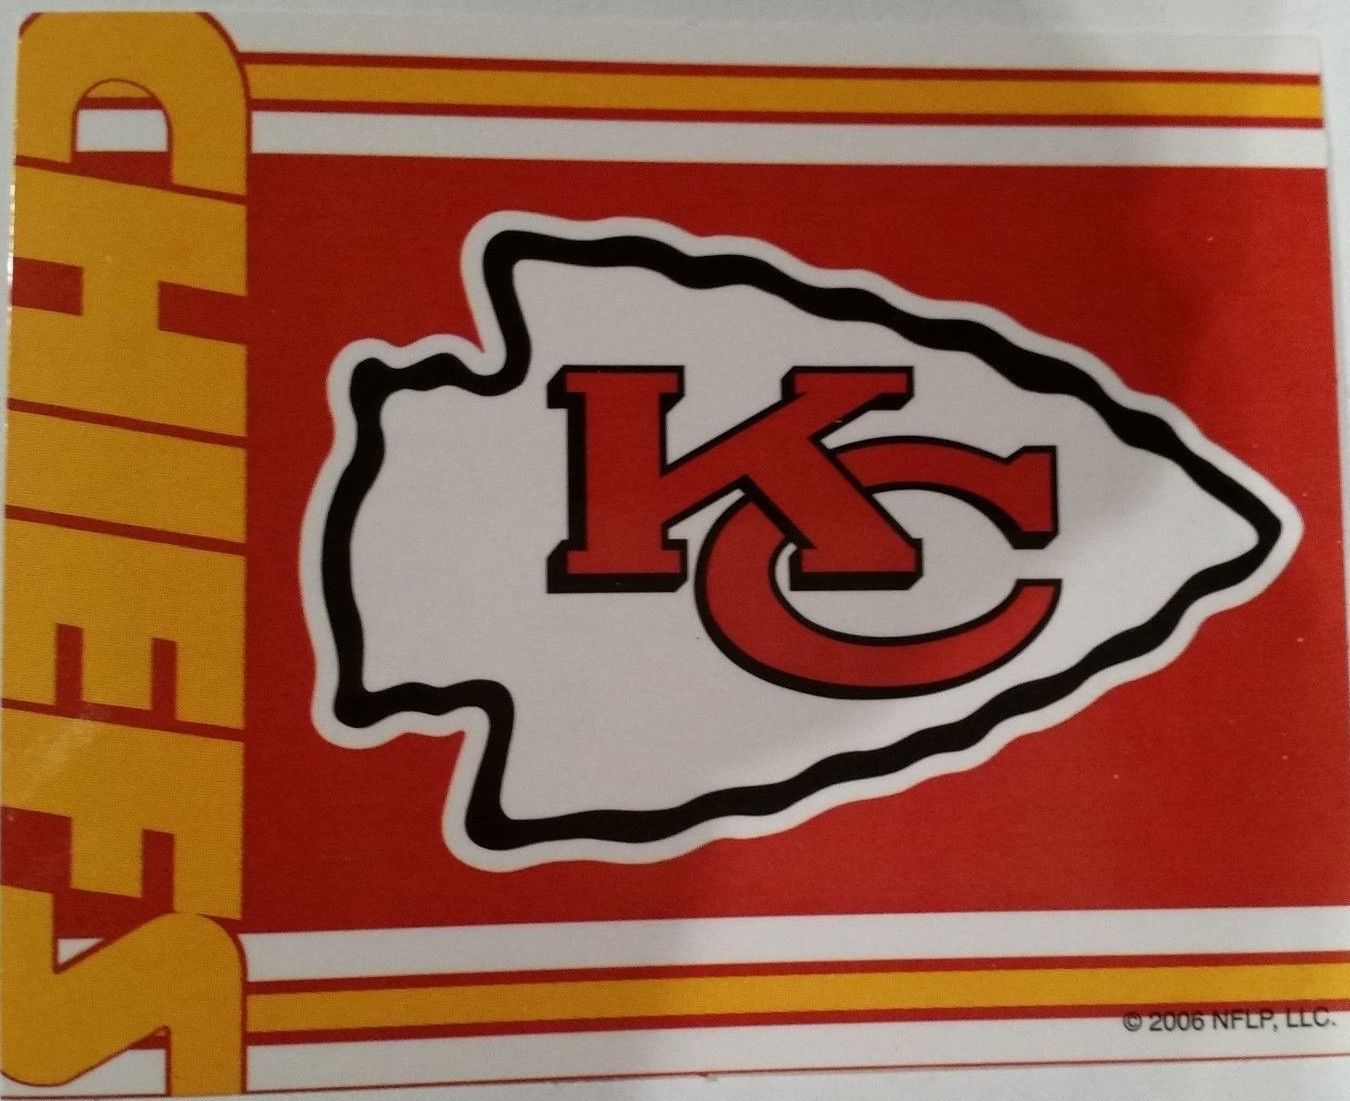 Primary image for 2006 A & A Global Ind. Vending Machine NFL Sticker Kansas City Chiefs (3.5 x 3)